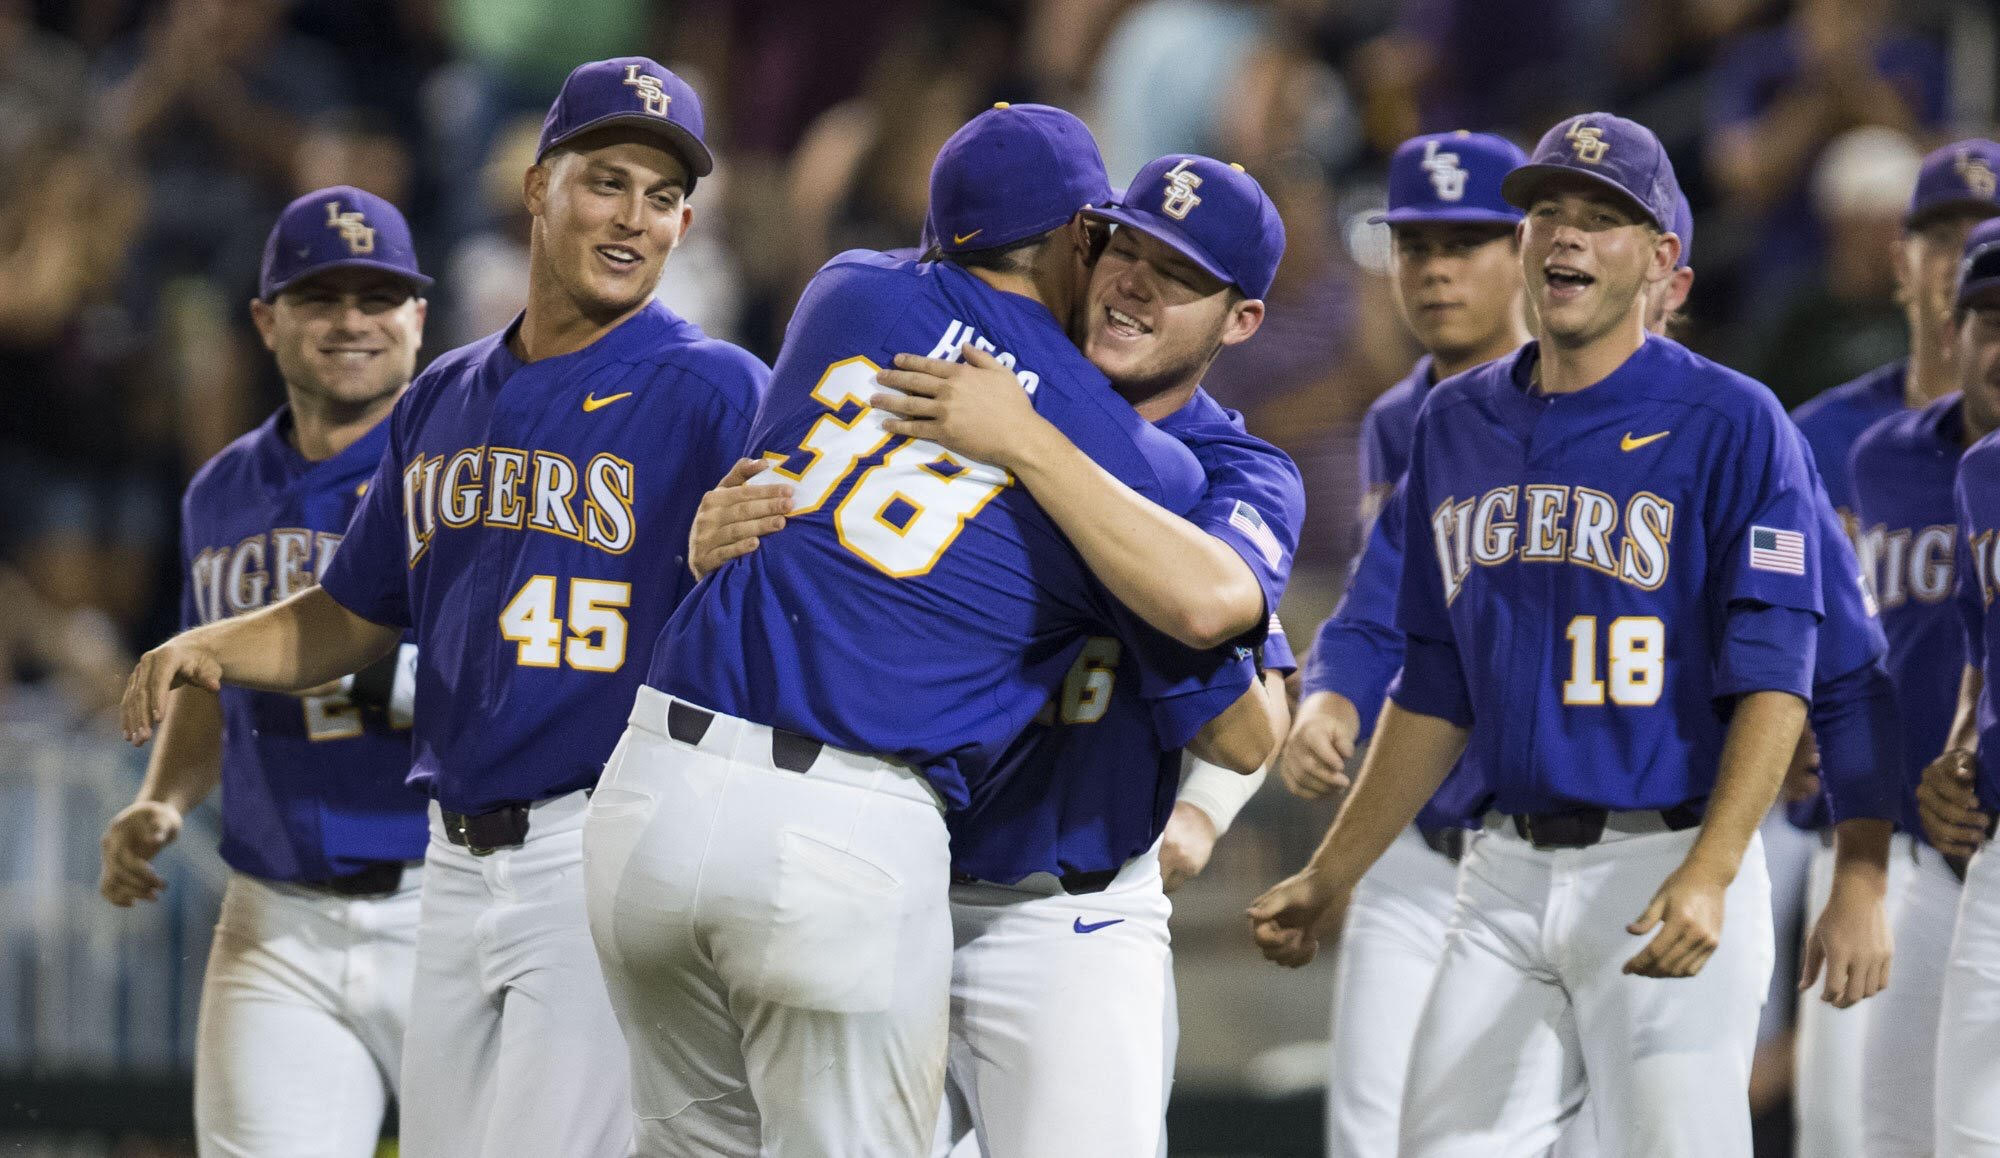 LSU fights off elimination, defeats Florida State 7-4